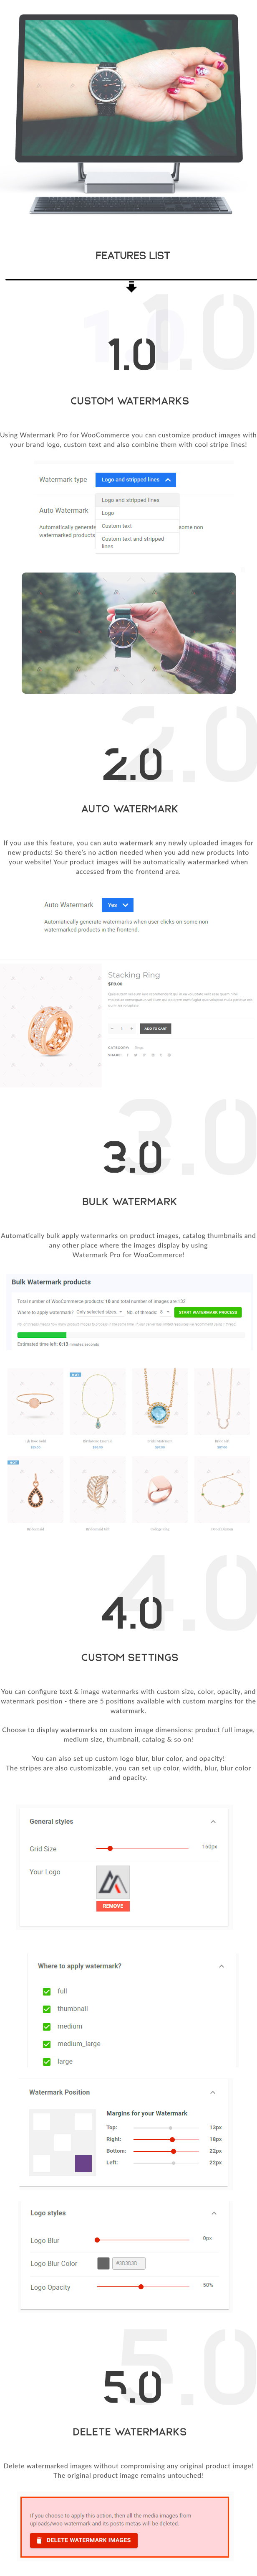 Watermark Pro for WooCommerce - 1 watermark pro for woocommerce - watermarkpro - Watermark Pro for WooCommerce